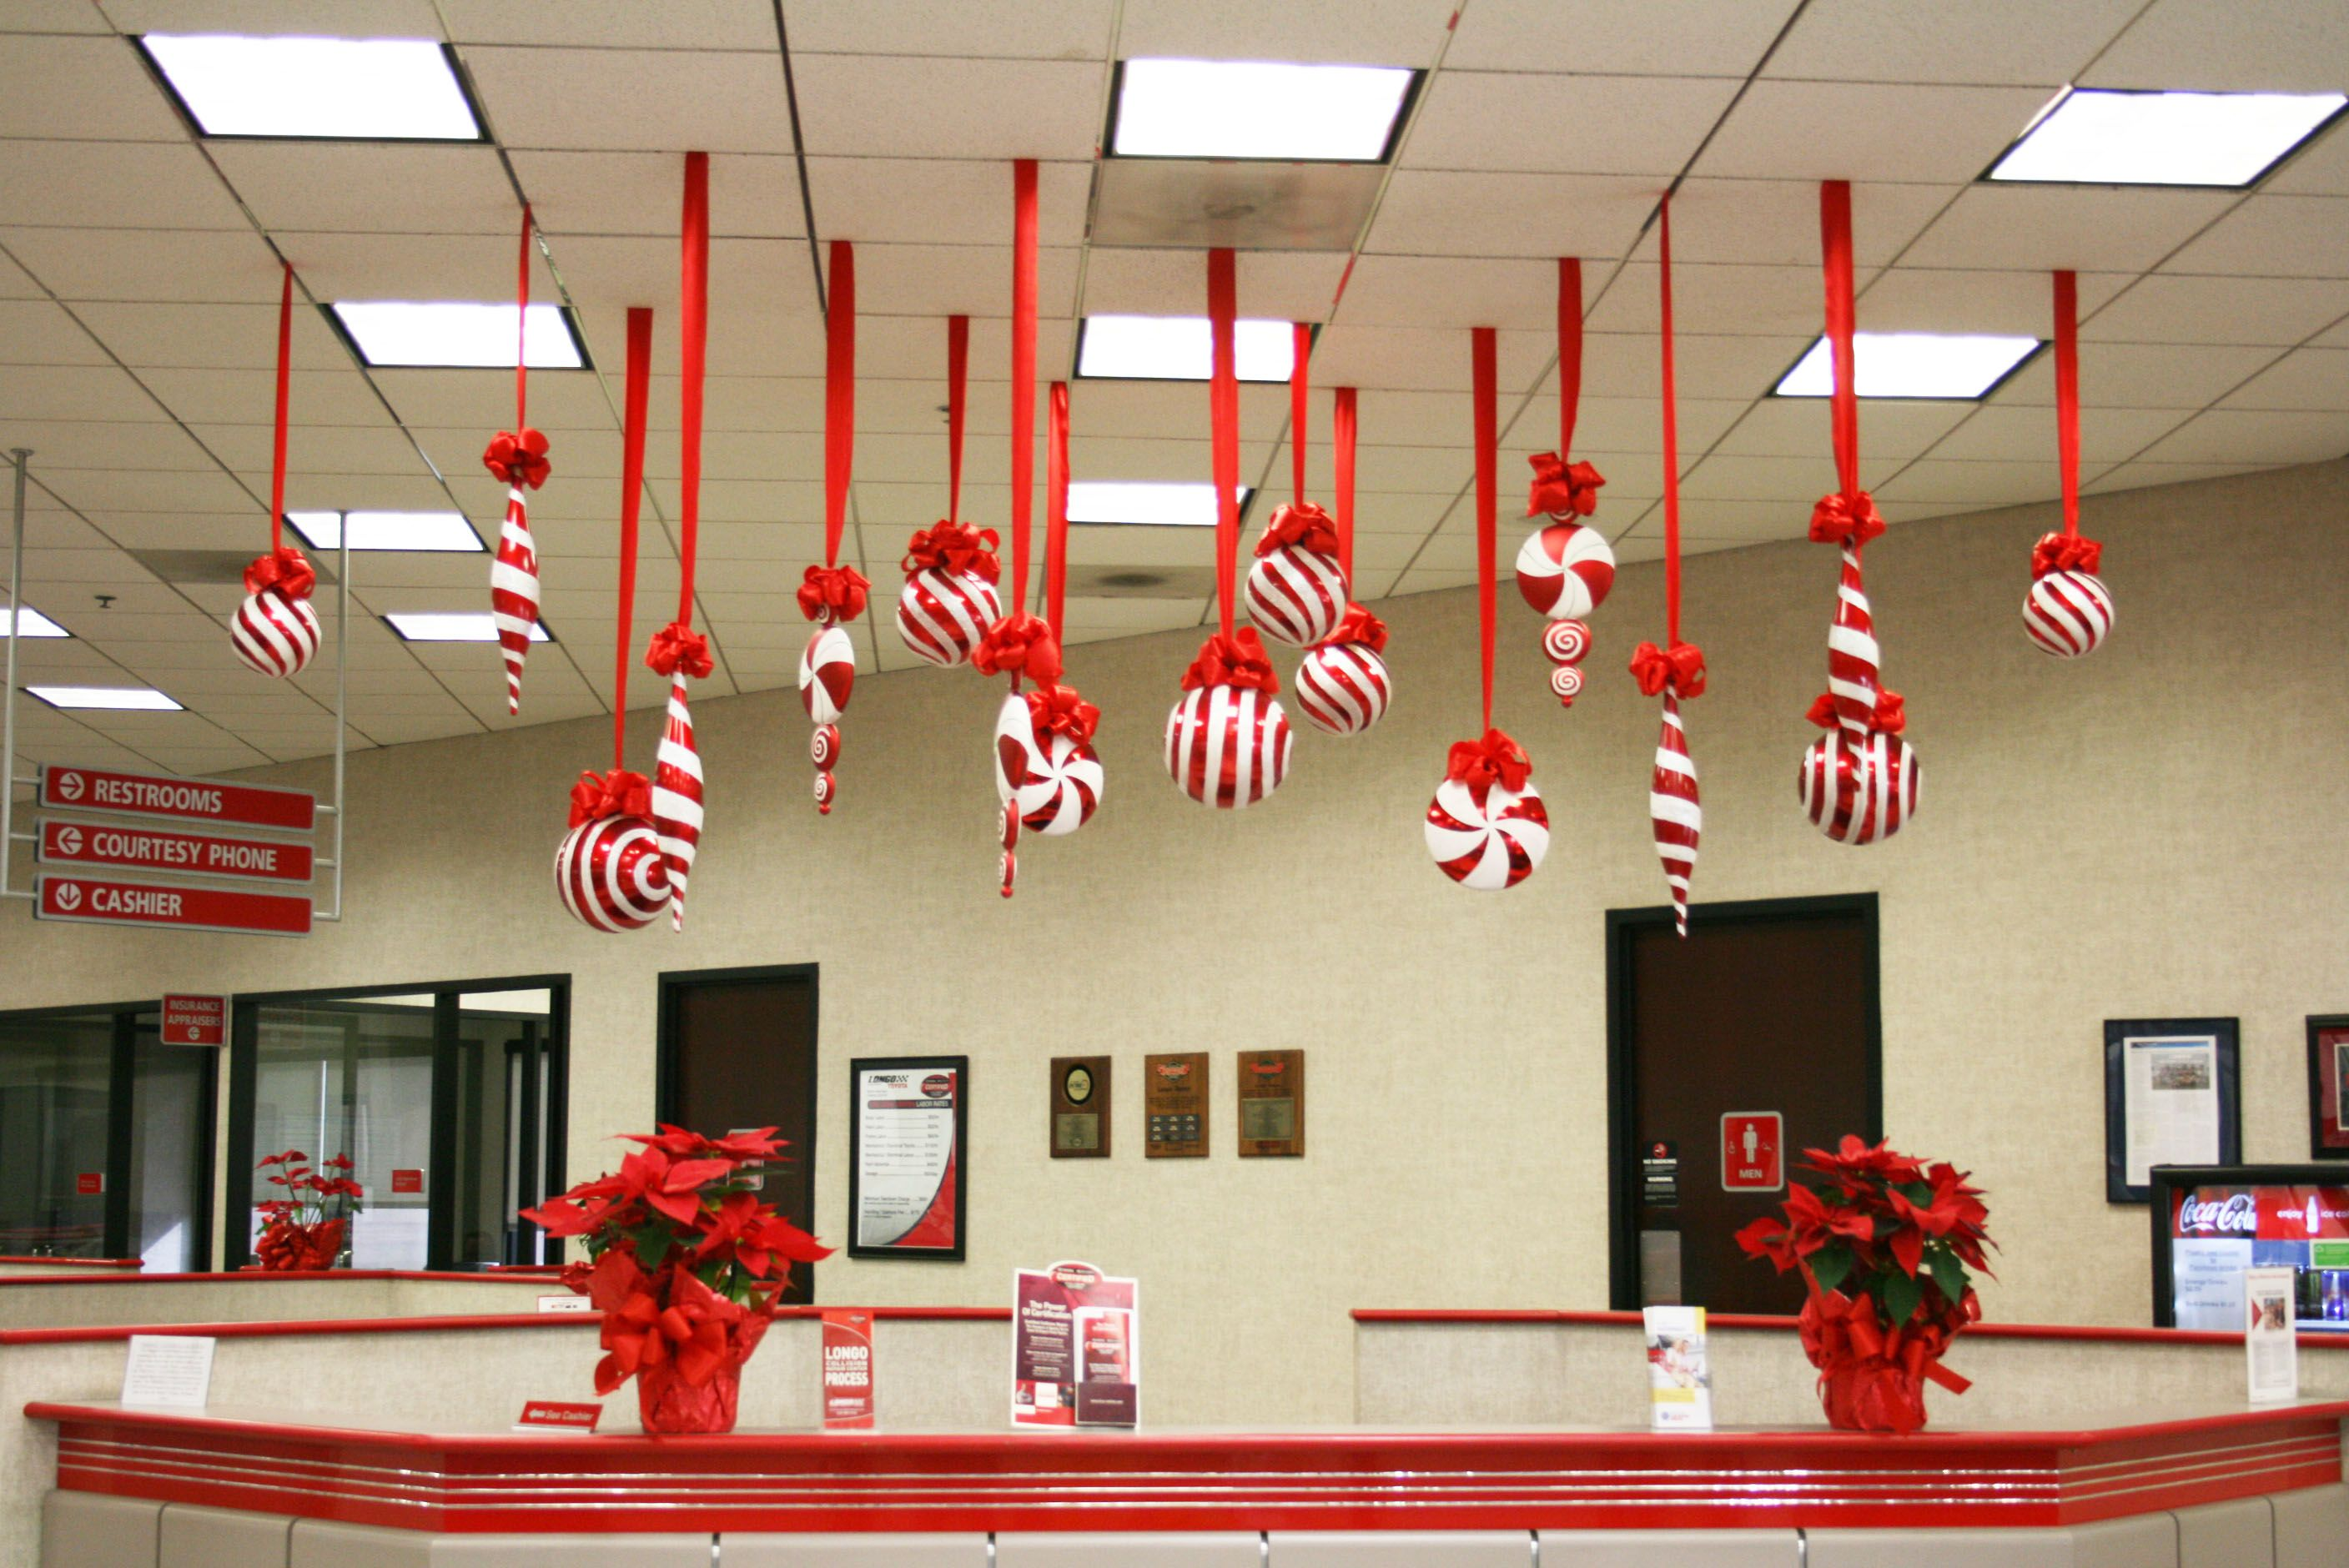 CREATIVE INSPIRATIONAL WORK PLACE CHRISTMAS DECORATIONS | ED ...